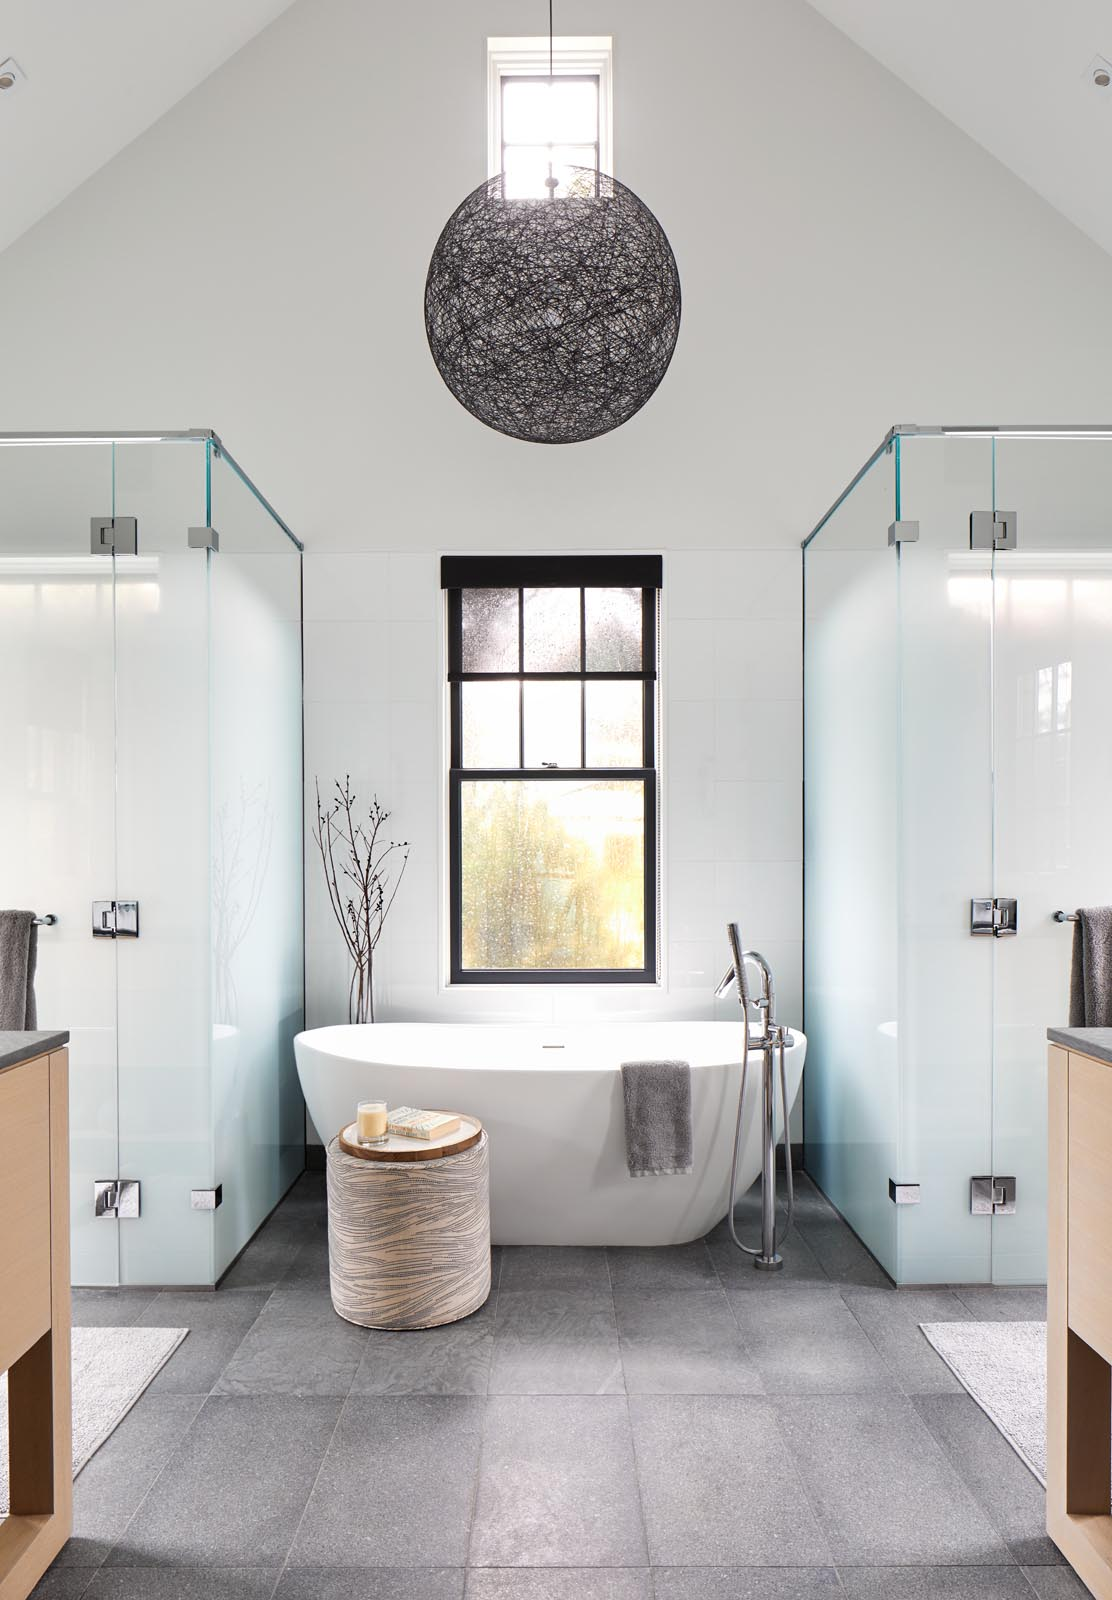 In this modern master bathroom, there's a freestanding bathtub that rests in front of the window, while frosted glass hides the showers.